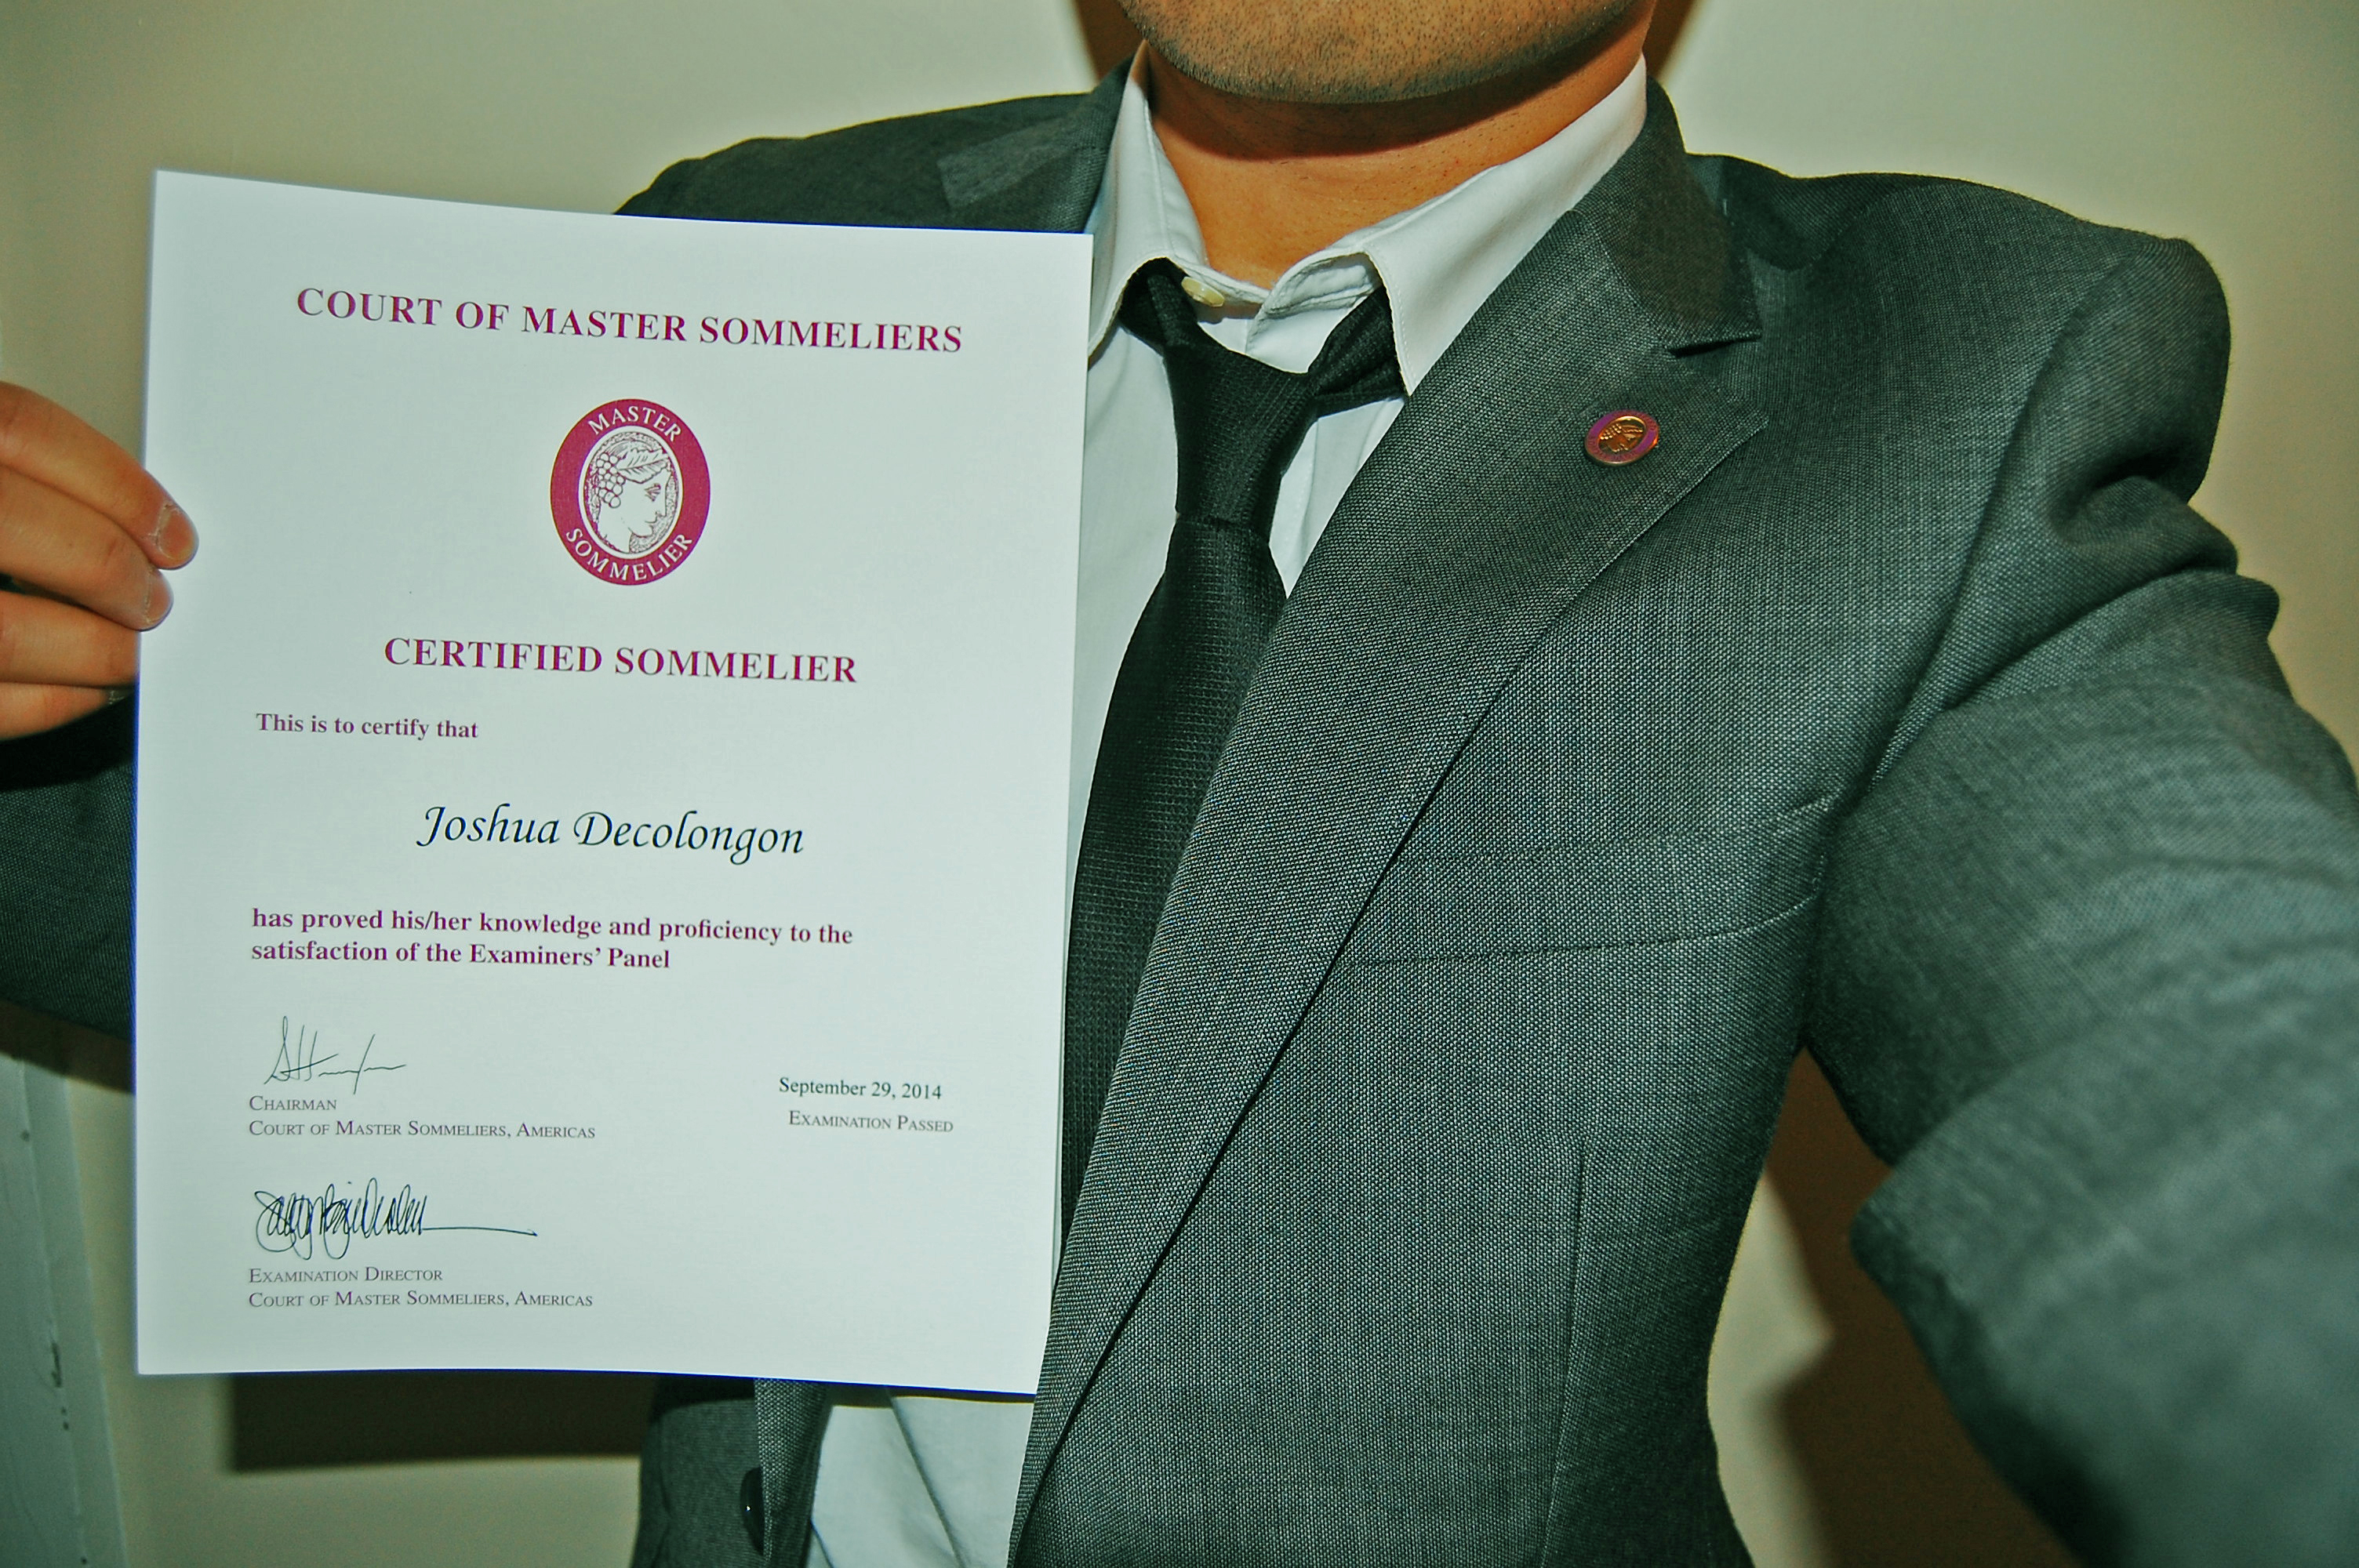 Court Of Master Sommeliers The Certified Sommelier Exam